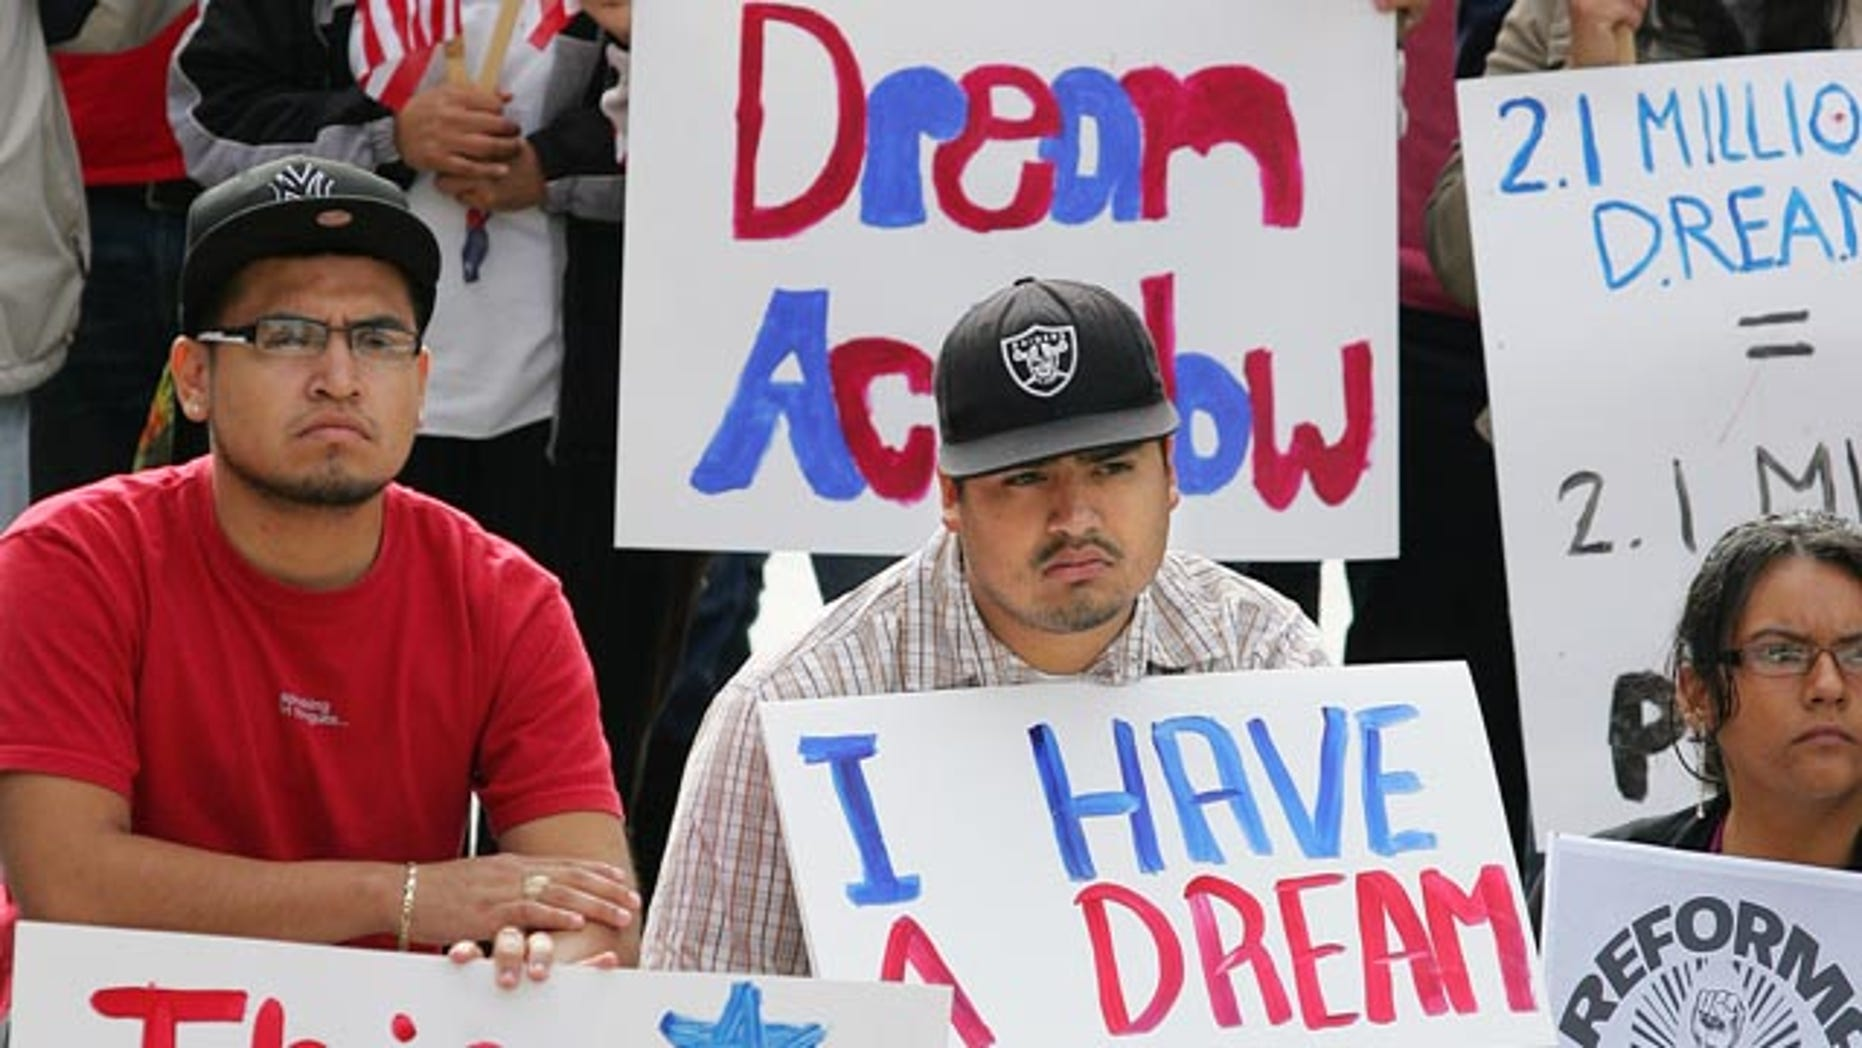 Miguel Campos, left and Eduardo Rodriguez hold signs in support of Fresno State Student Body President Pedro Ramirez who spoke to hundreds of students and faculty about getting the Dream Act passed by Congress Friday, Nov. 19, 2010 in Fresno, Calif. in the Free Speech area of the university. Ramirez was recently outted as being undocumented and could now face deportation. The legislation would grant undocumented students who were brought into the United States as minors by their parents a path to citizenship through higher education or military service. (AP Photo/Gary Kazanjian)